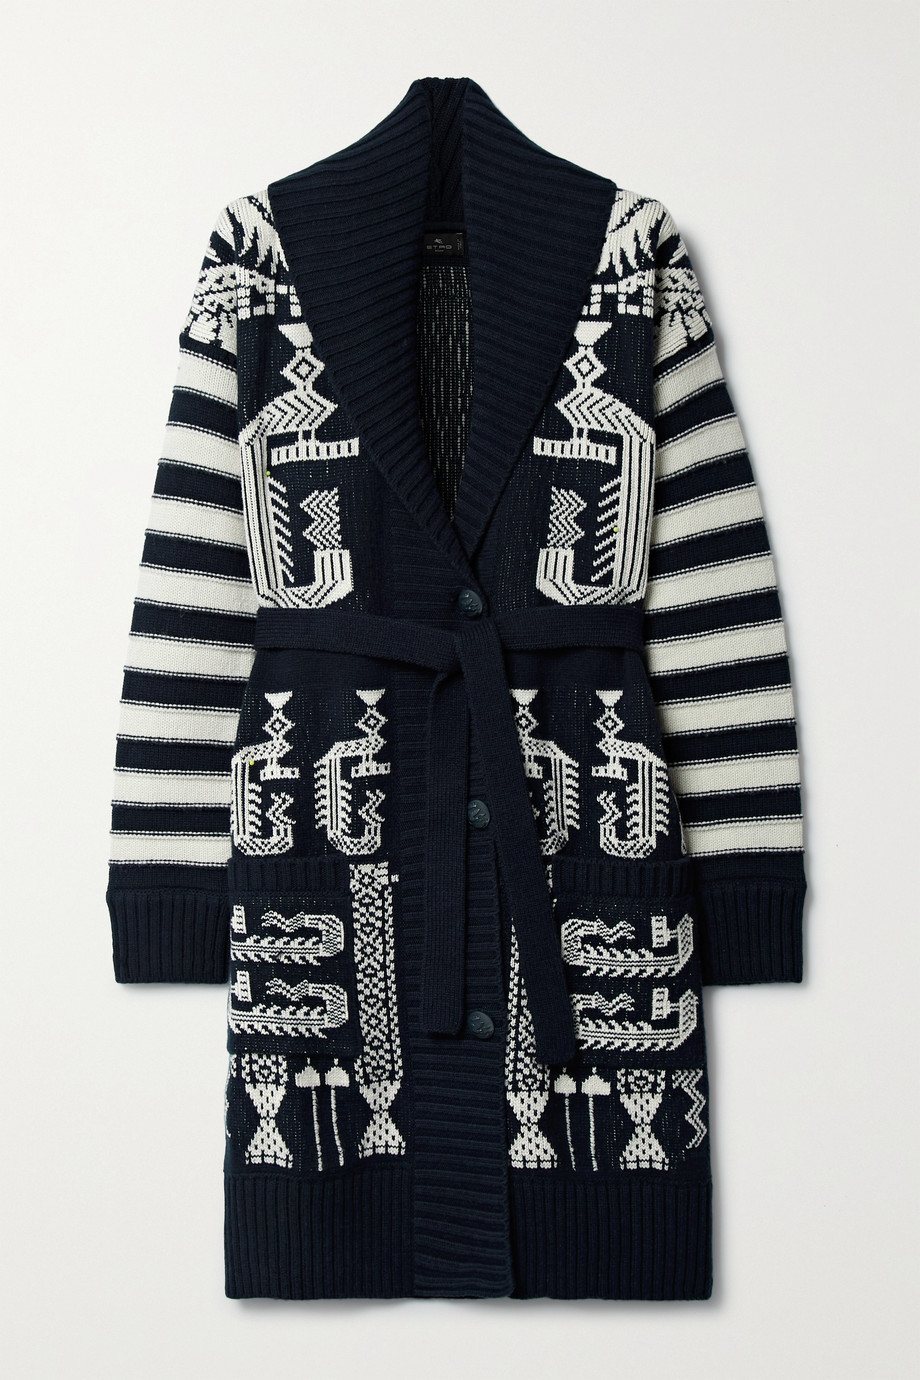 ETRO Wool and cotton-blend jacquard cardigan